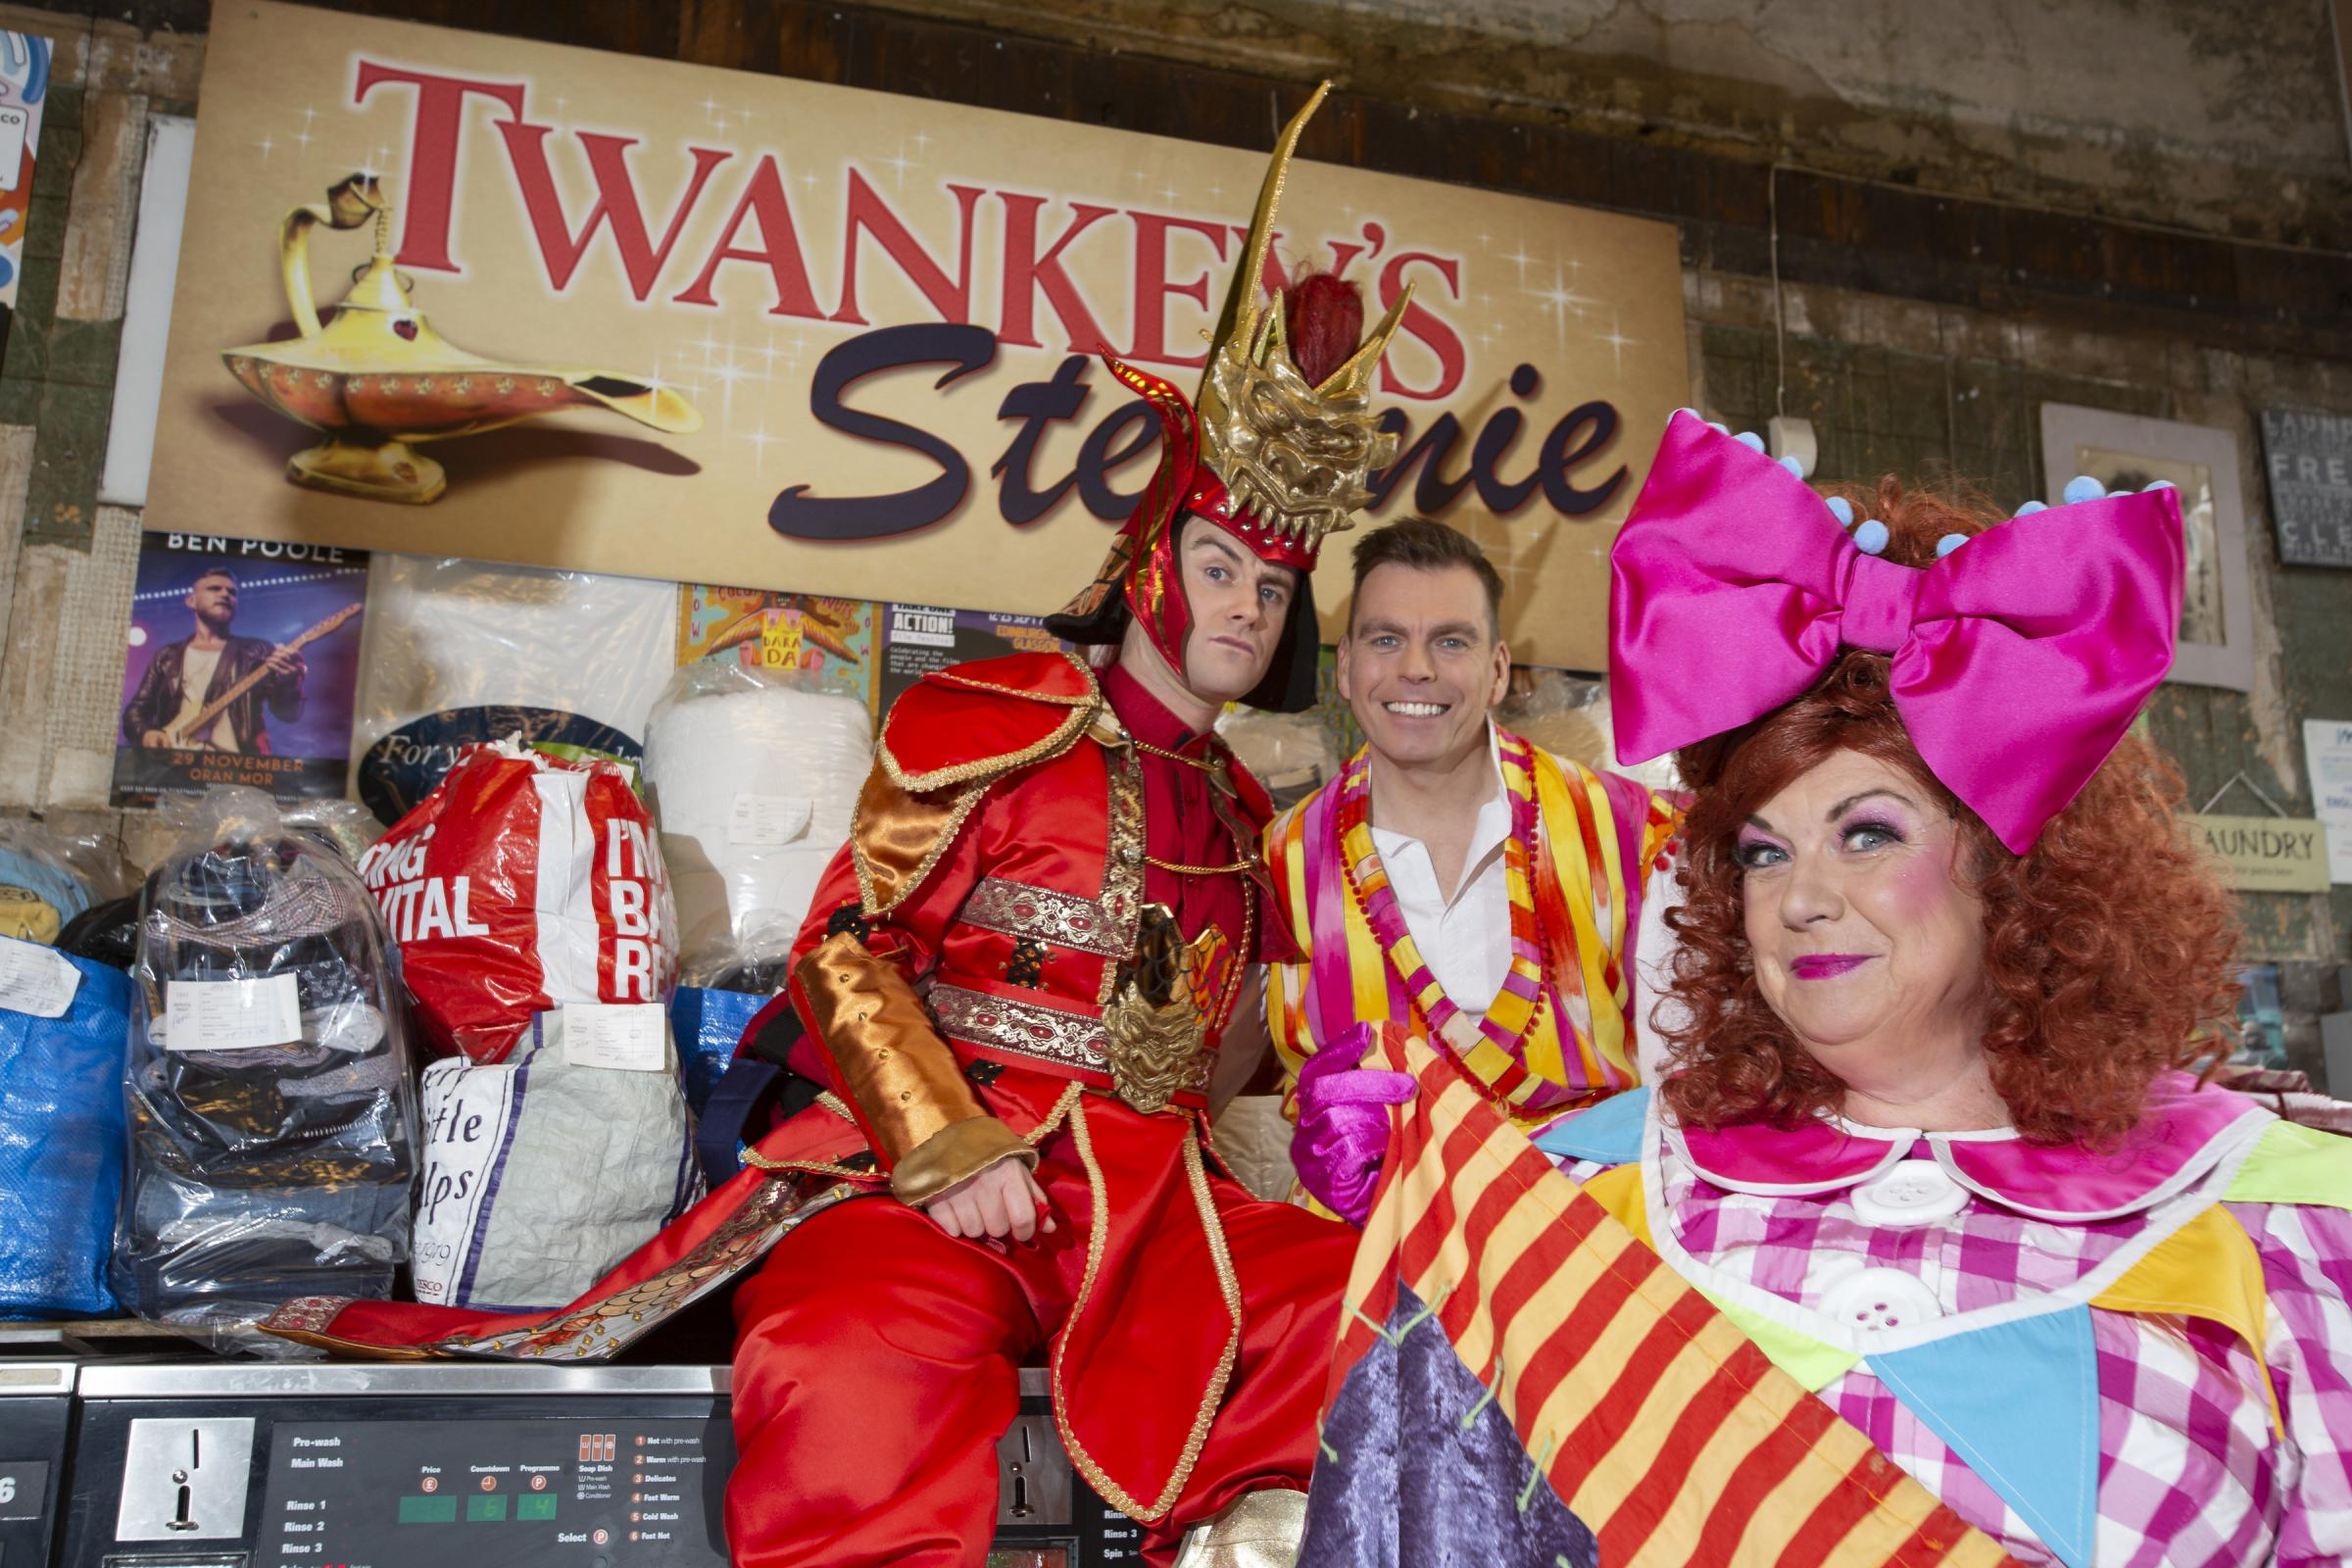 The KIng's Theatre Aladdin panto stars Elaine C Smith, Johnny Mac and Paul-James Corrigan.